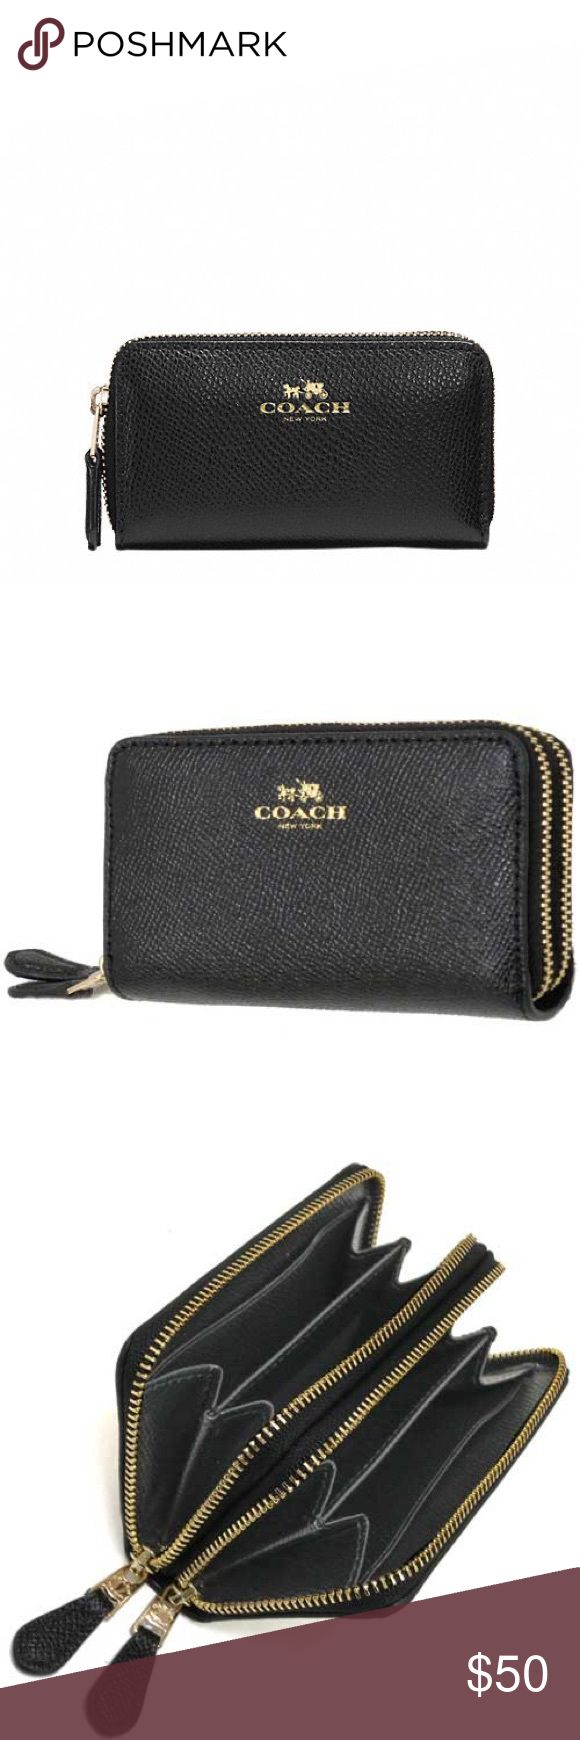 "SMALL DOUBLE ZIP COIN CASE IN CROSSGRAIN LEATHER SMALL DOUBLE ZIP COIN CASE IN CROSSGRAIN LEATHER STYLE NO. F57855  DETAILS Crossgrain leather Credit card pockets Zip closure, fabric lining Zip coin pocket 4 1/2"" (L) x 2 1/2"" (H) COLOR: IMITATION GOLD/BLACK Coach Bags Wallets"